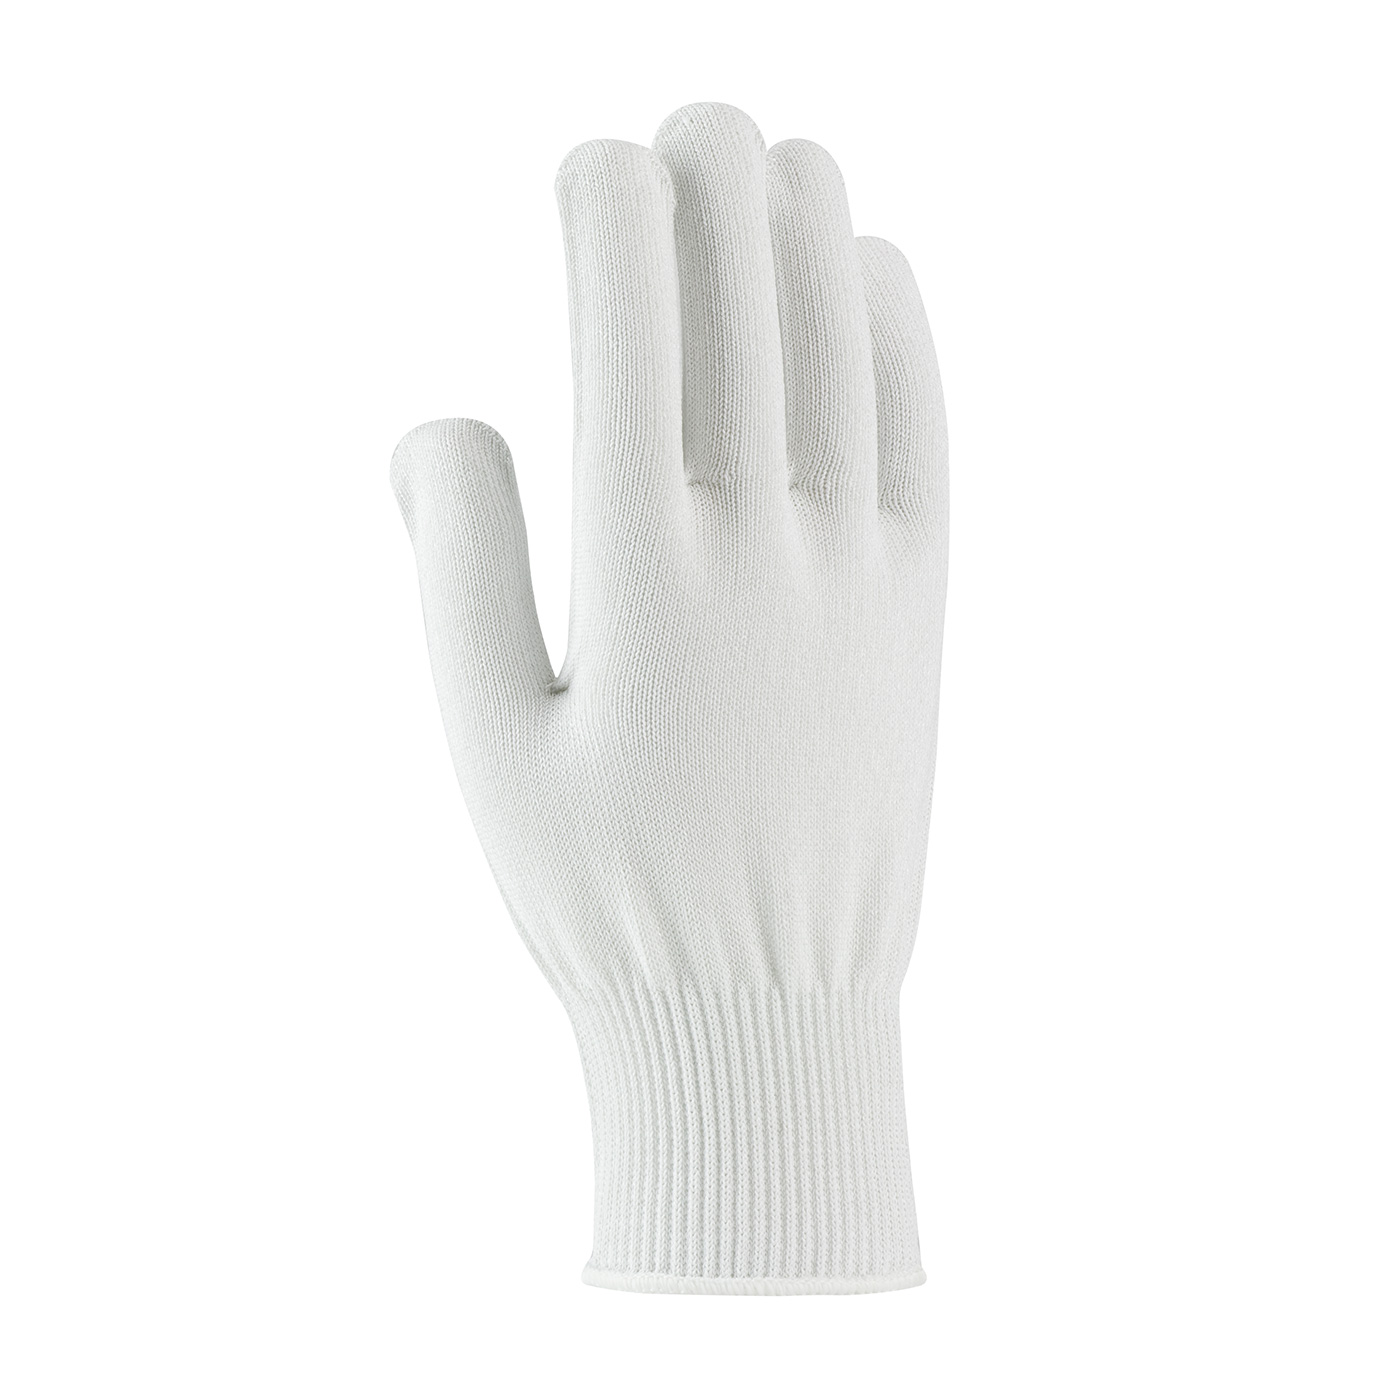 PIP Kut Gard® White Seamless Knit Antimicrobial/Dyneema® Cut Resistant Gloves - Light Weight